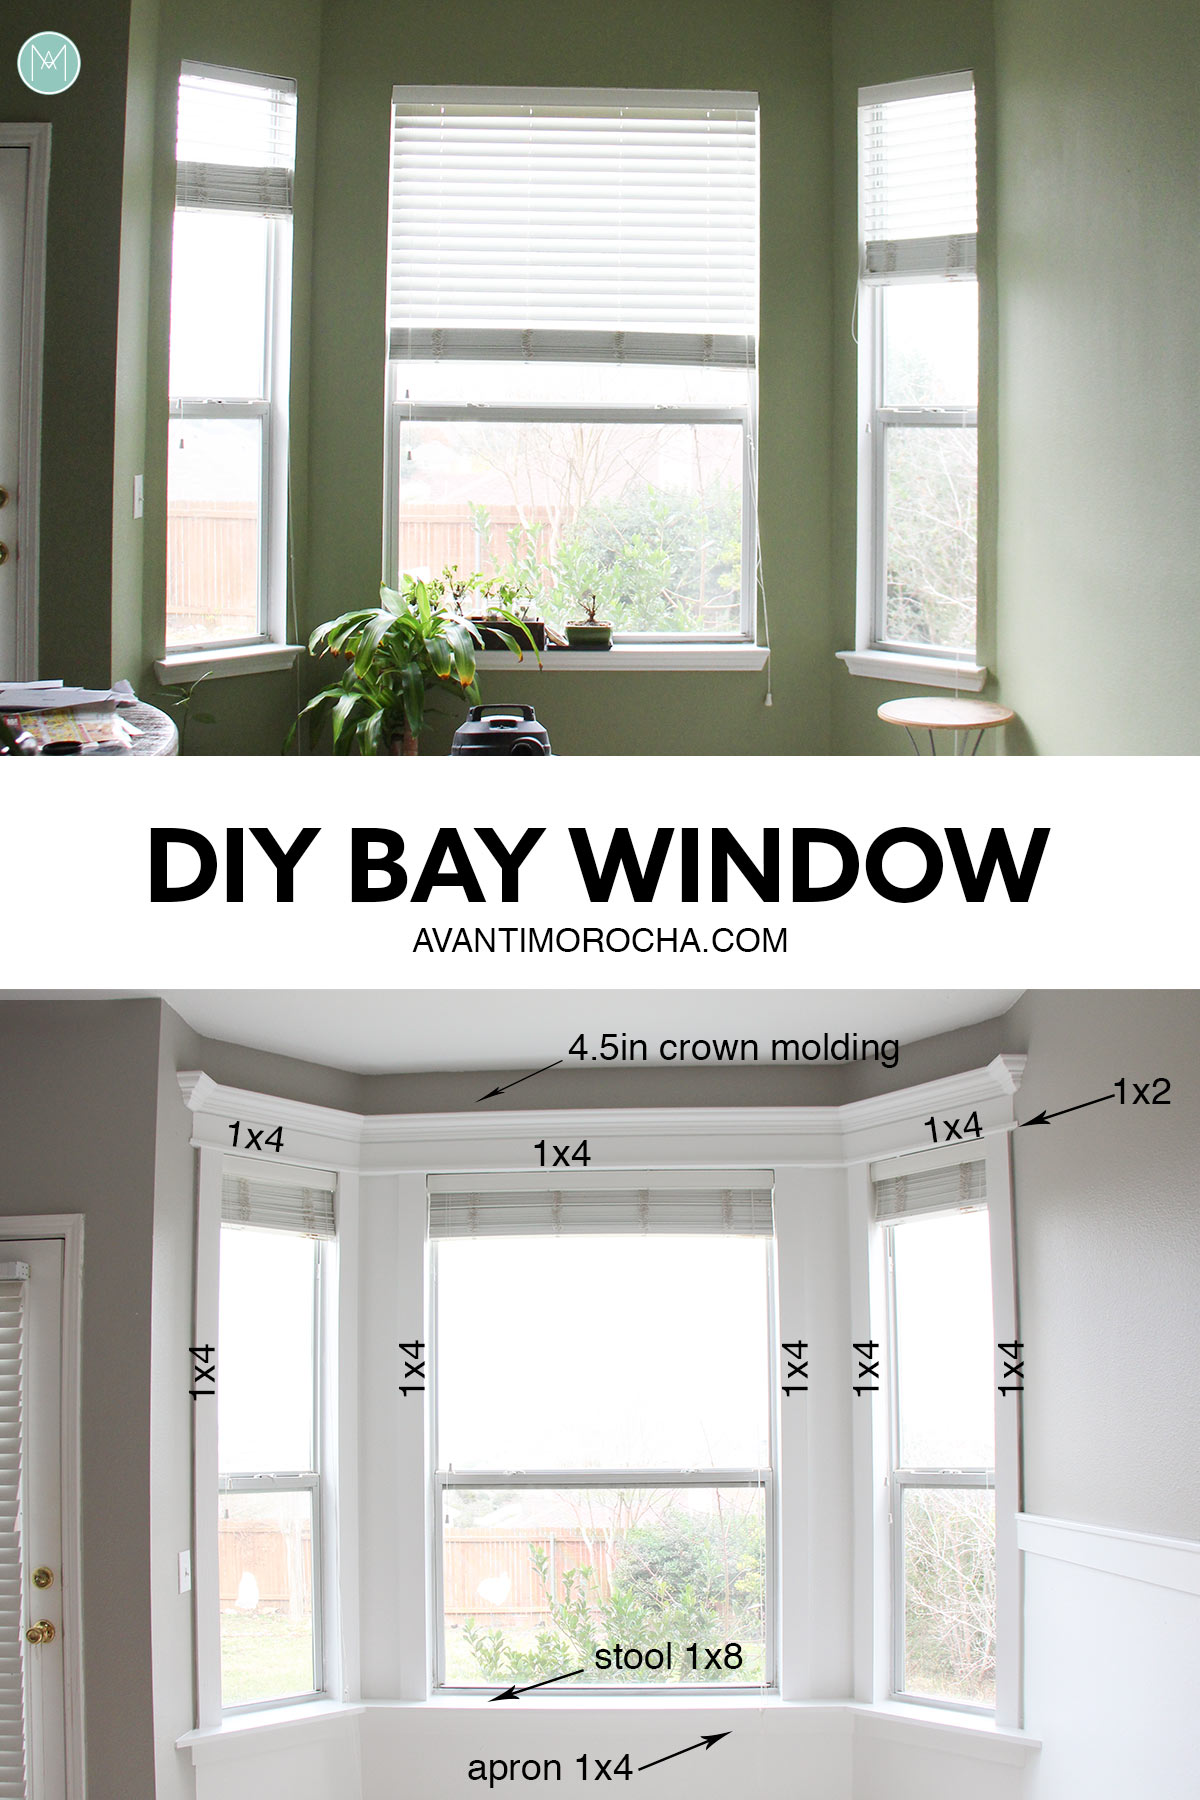 DIY Bay window